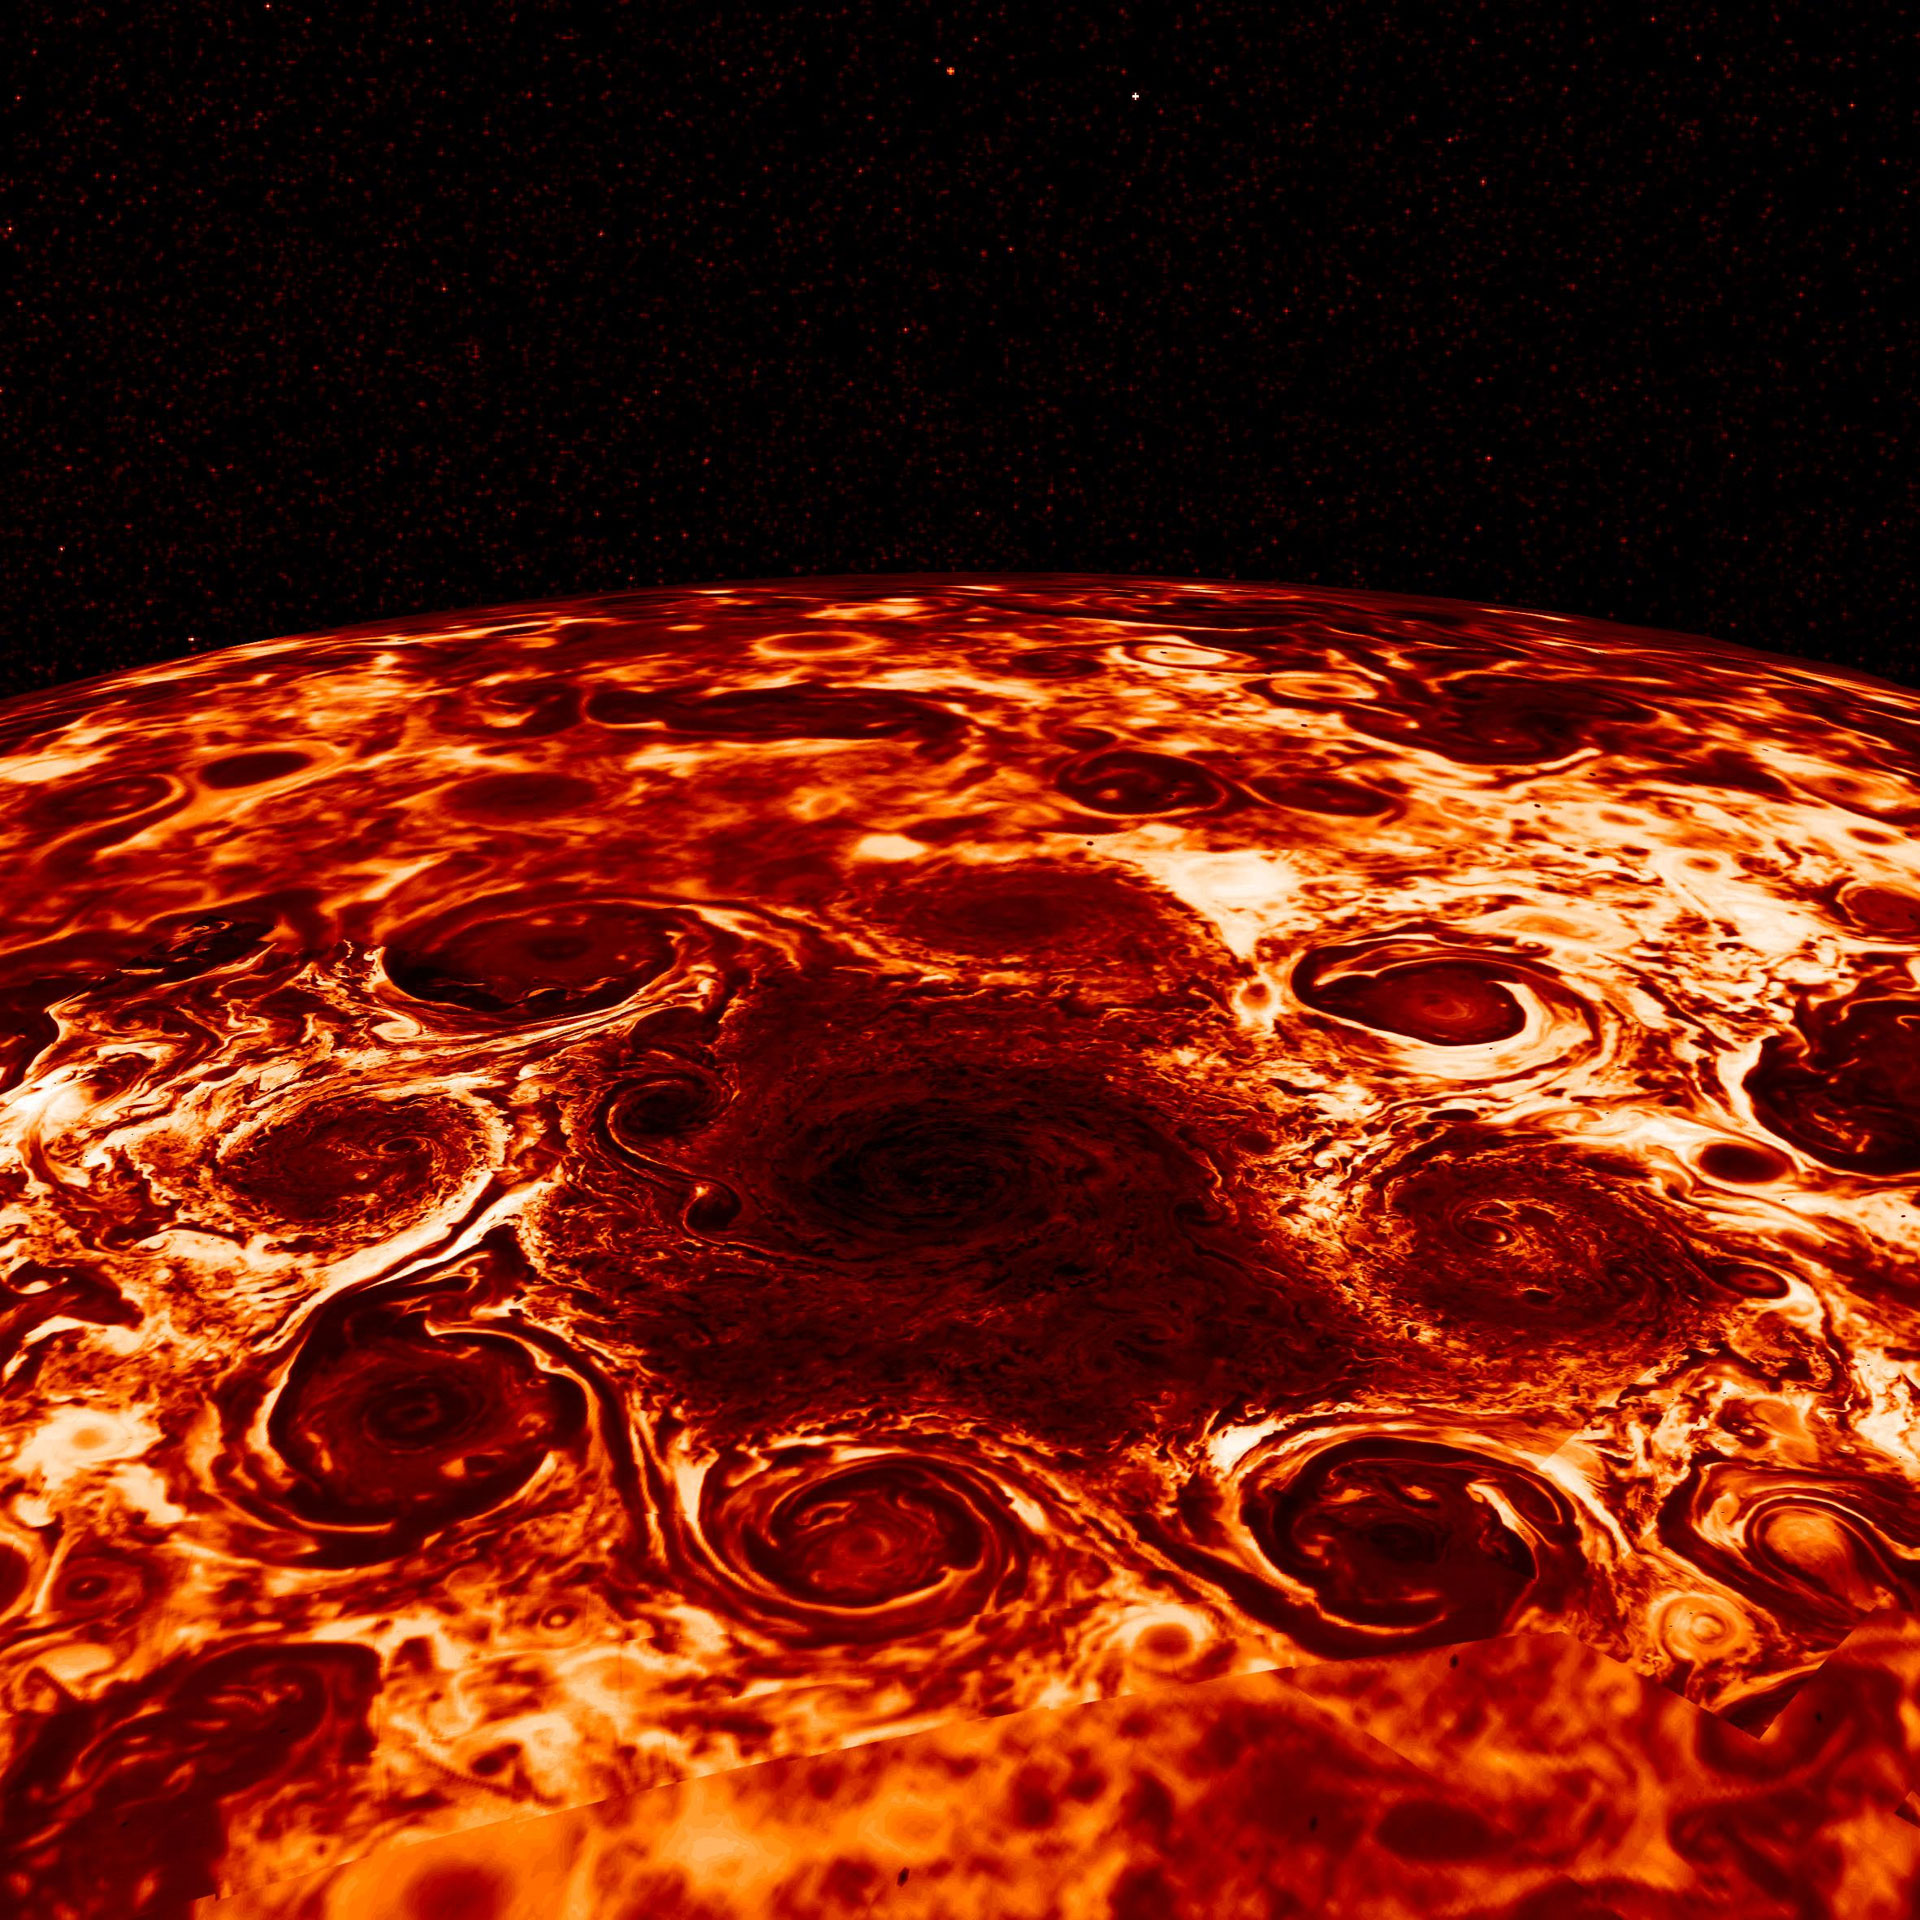 Mystery of Strange Storms on Jupiter With Unusual Geometric Pattern Solved With Help From 19th Century Physics - SciTechDaily